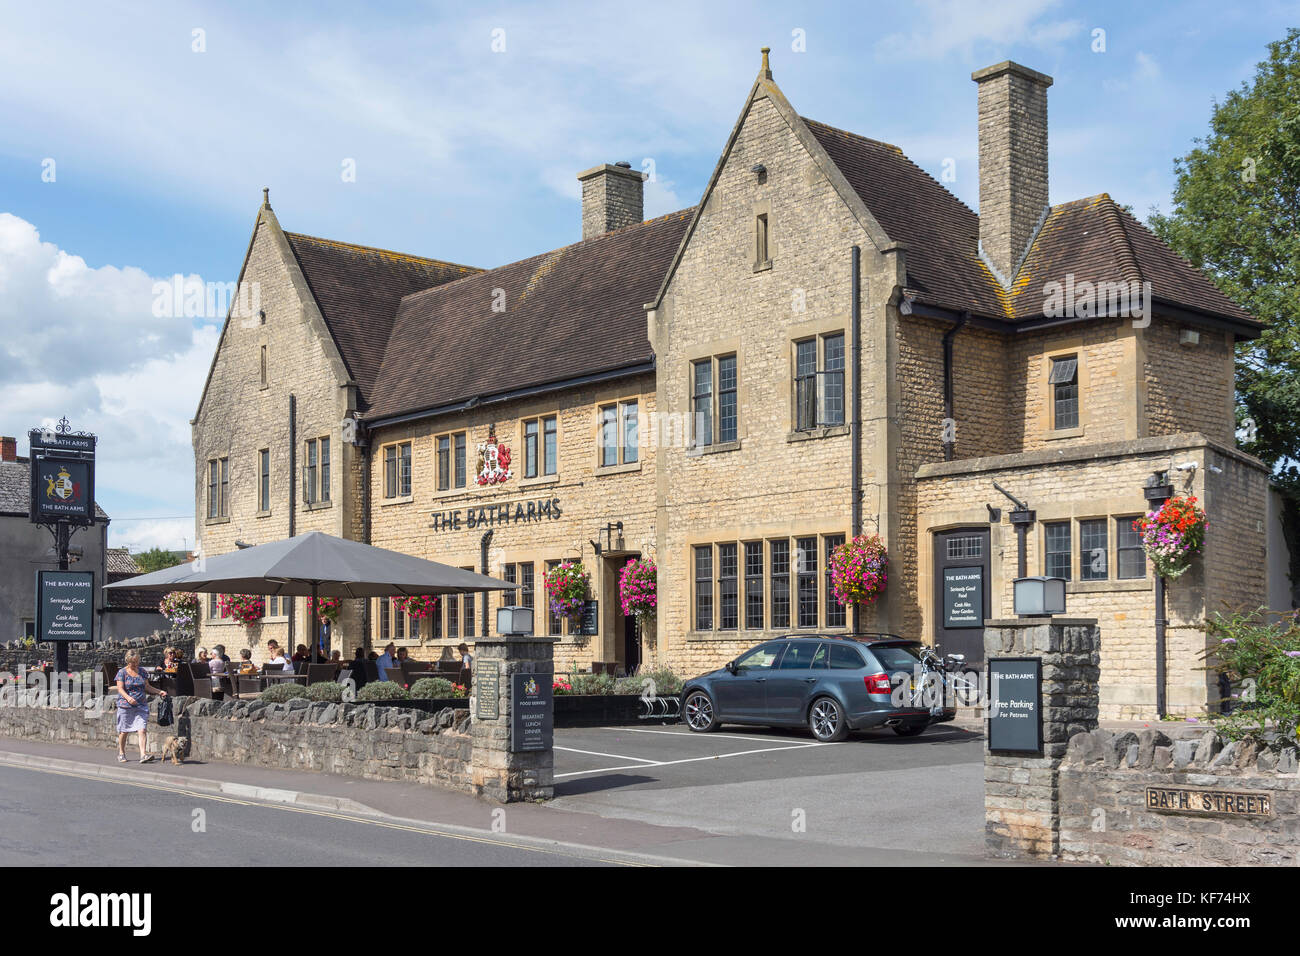 The Bath Arms, Bath Road, Cheddar, Somerset, England, United Kingdom - Stock Image